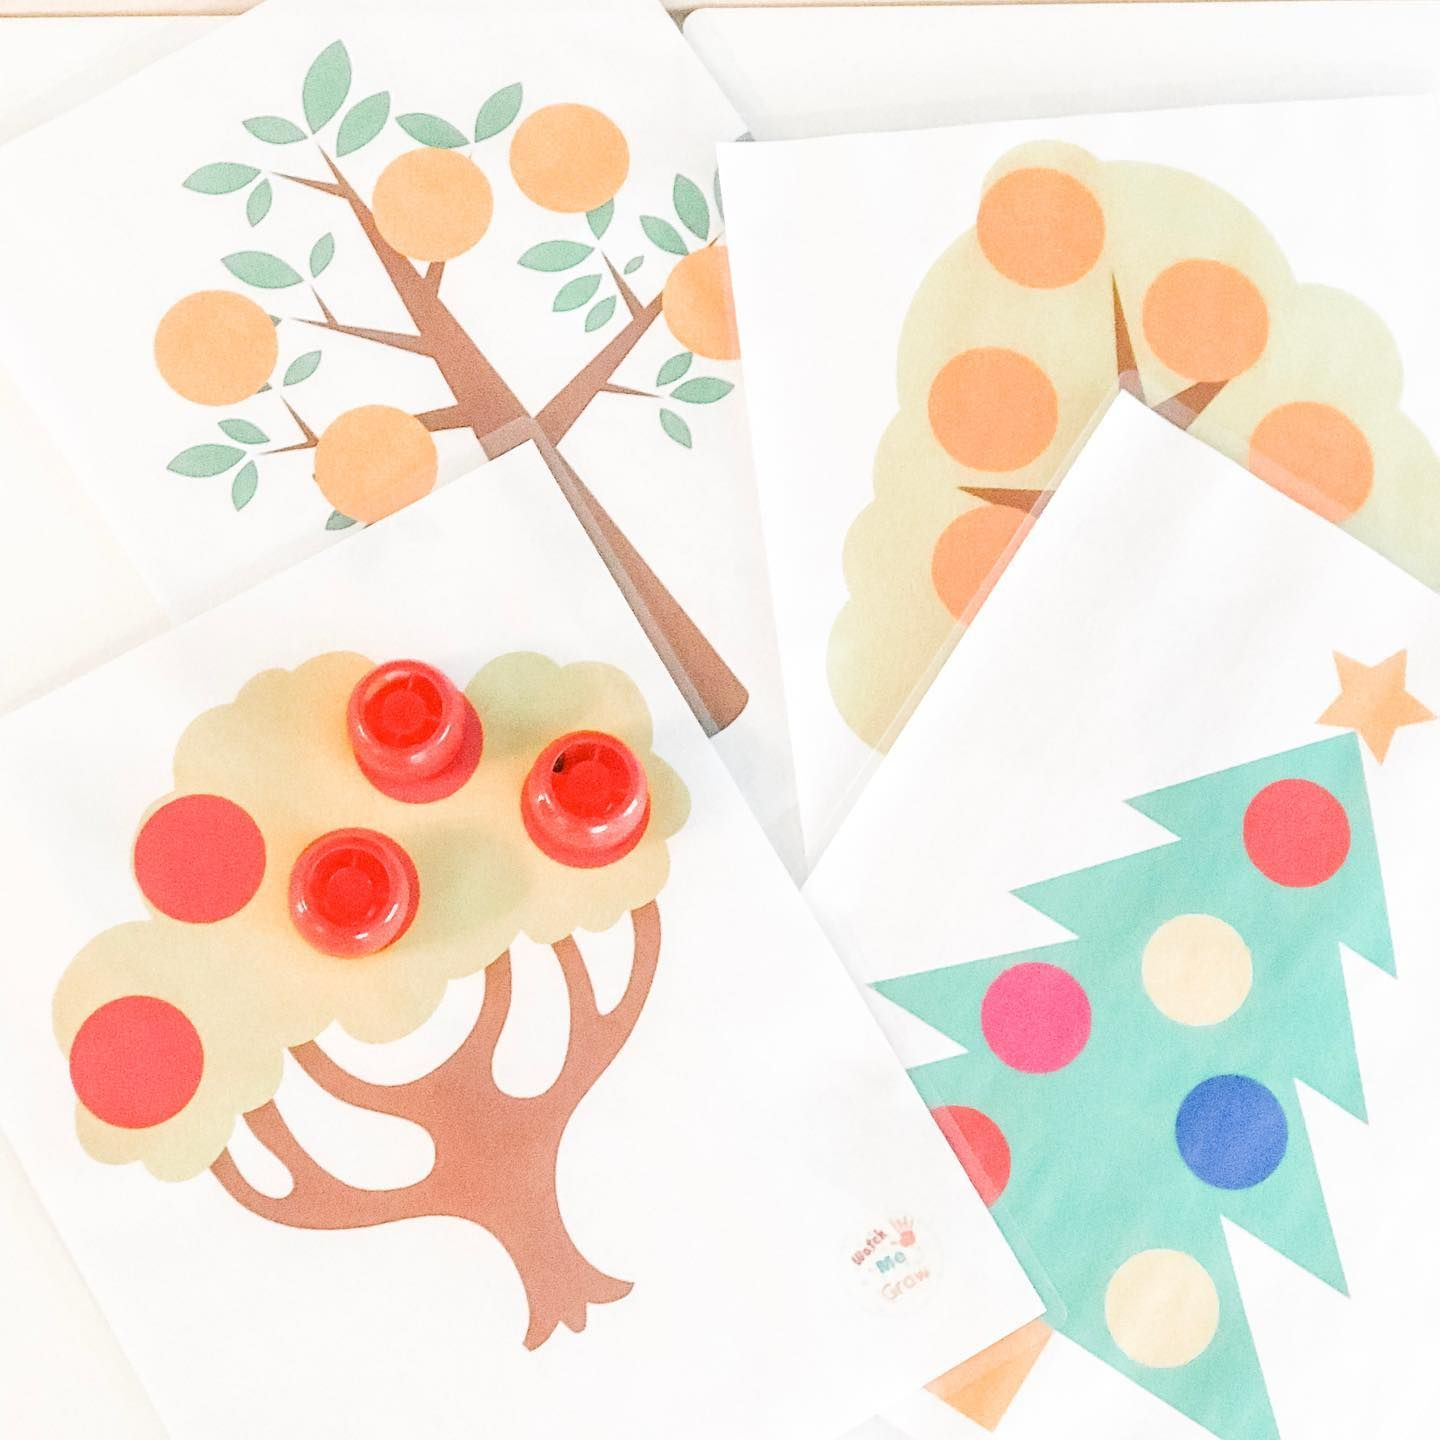 Counting And Matching Can Be So Much Fun With This Tree